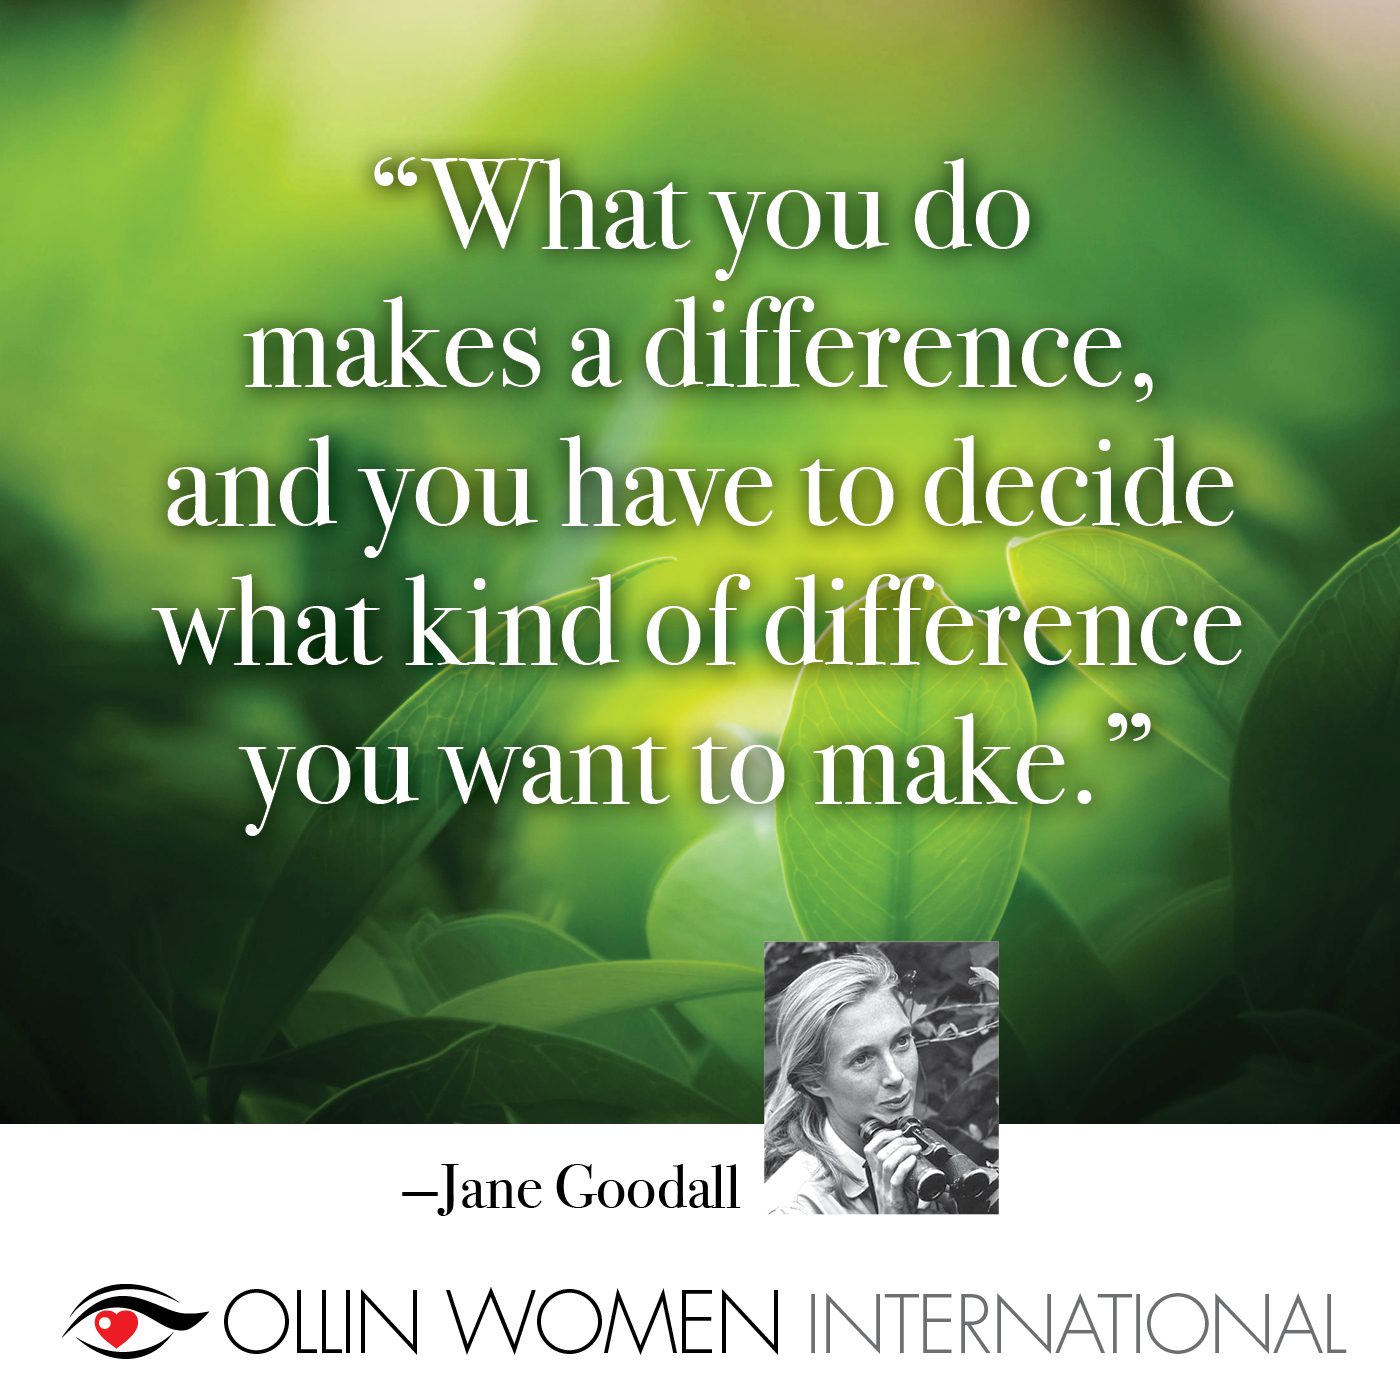 What you do makes a difference, and you have to decide what kind of difference do you want to make.